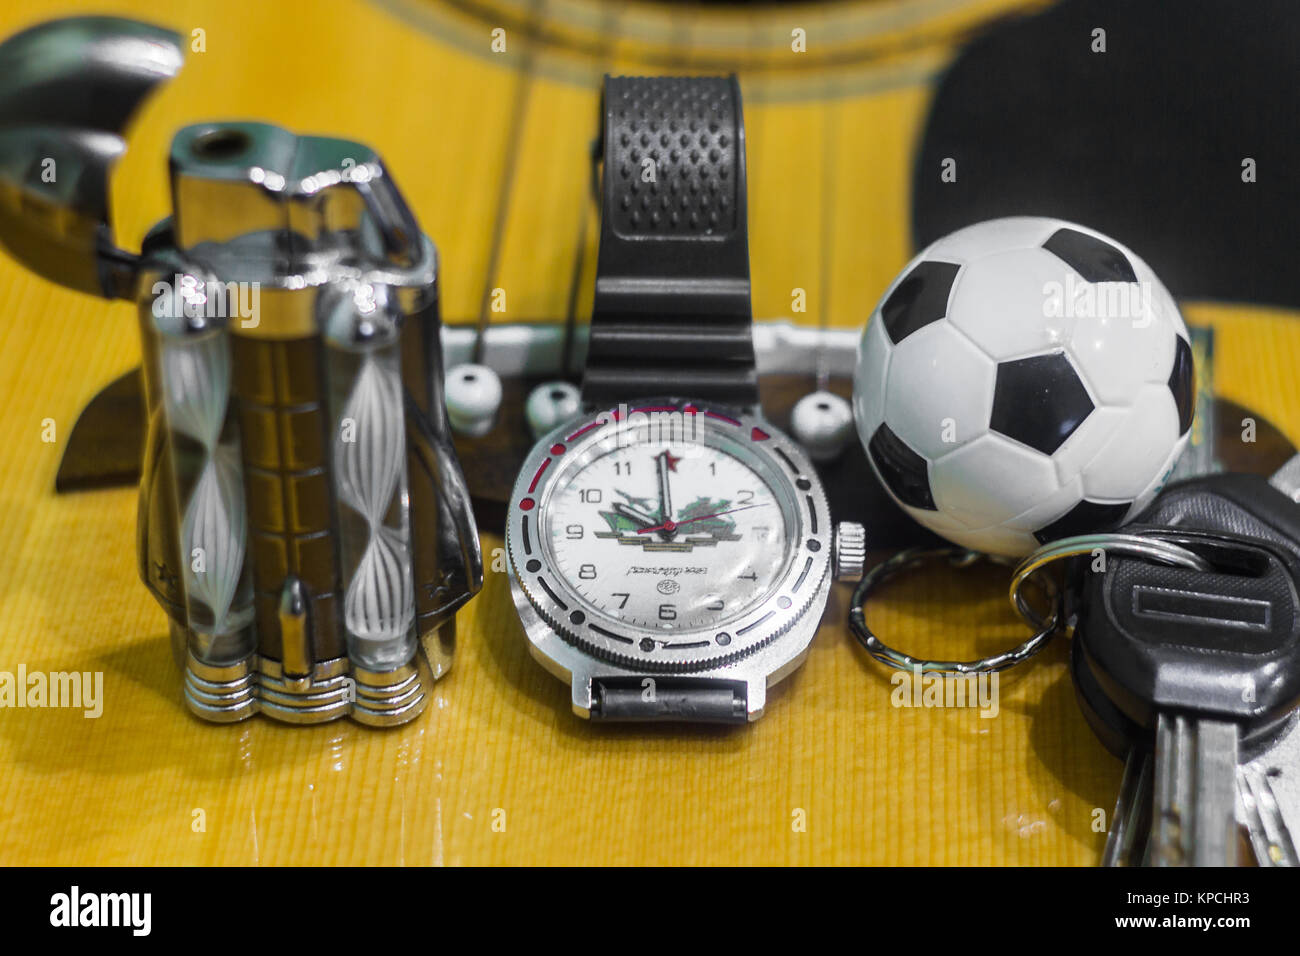 Wrist watch, cigarette, lighter, keychain with keys and acoustic guitar in the background - Stock Image